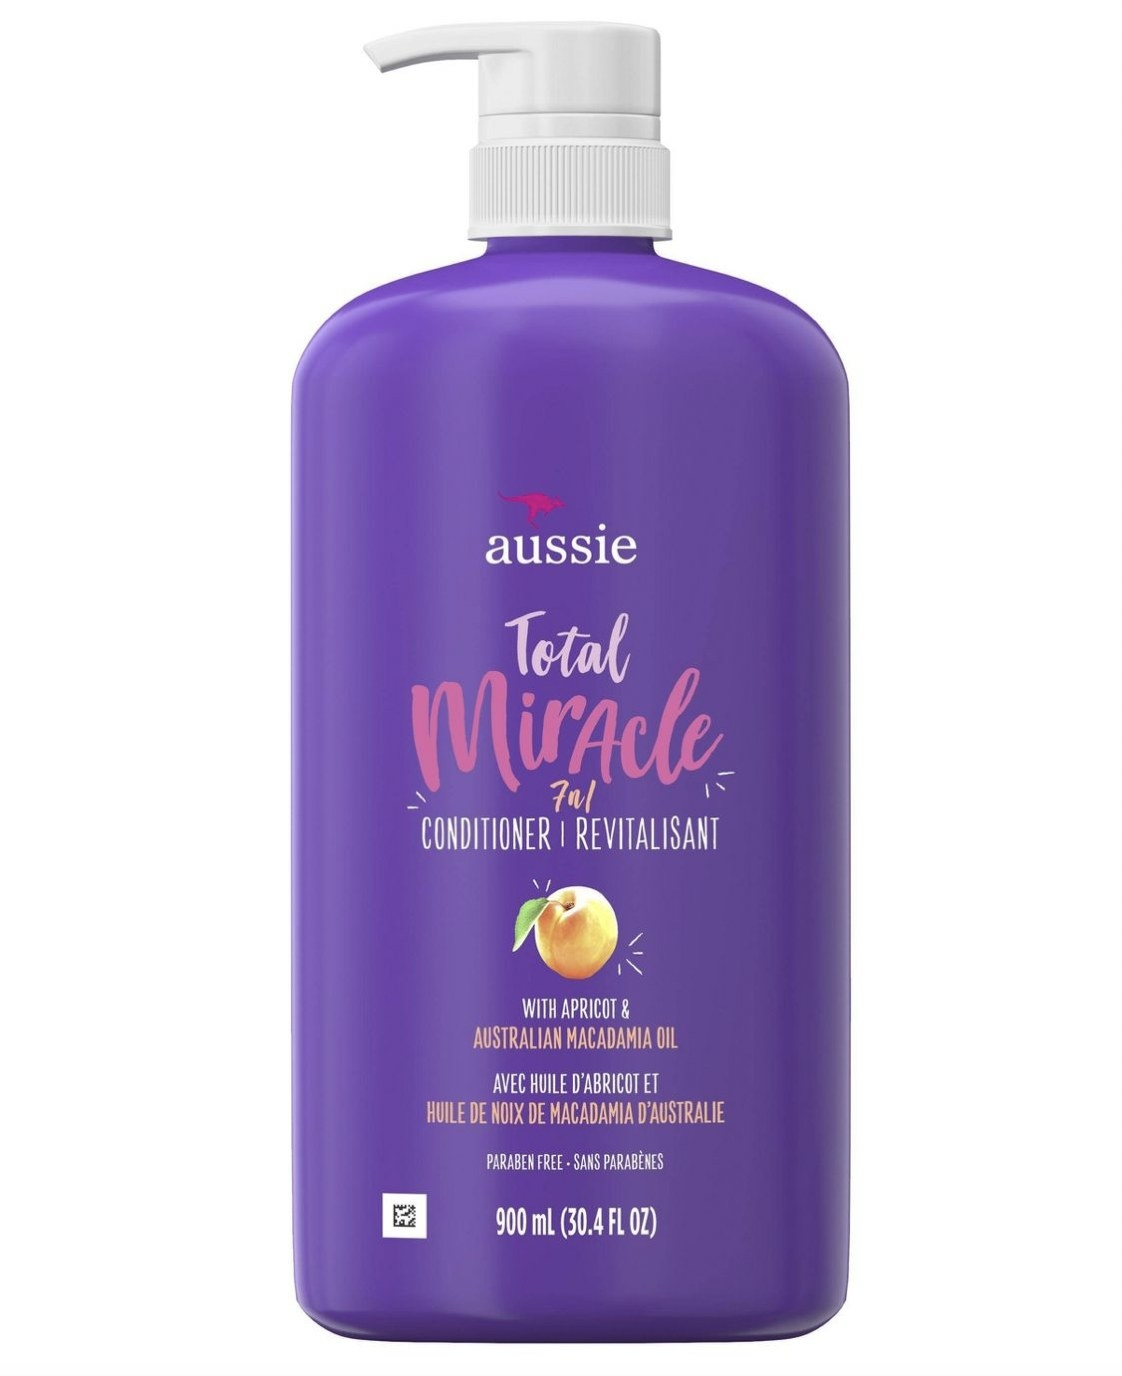 A purple bottle of conditioner